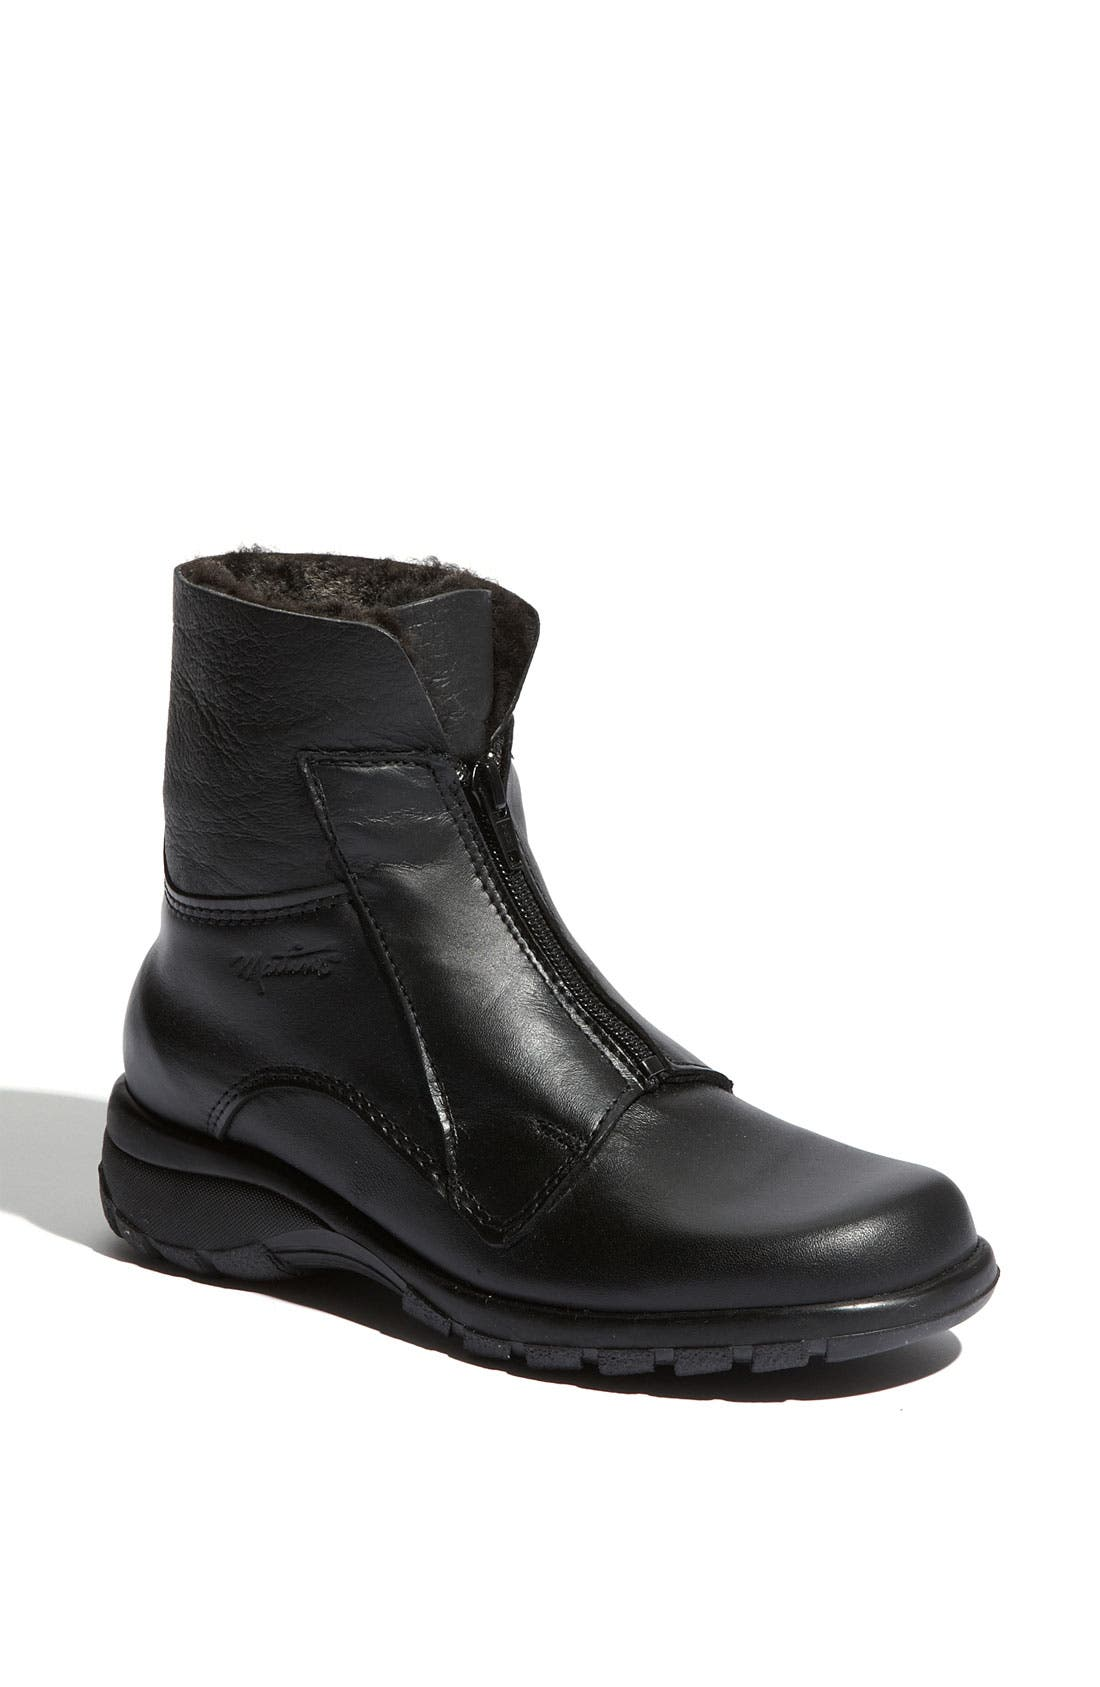 Main Image - Martino 'Puppy' Waterproof Boot